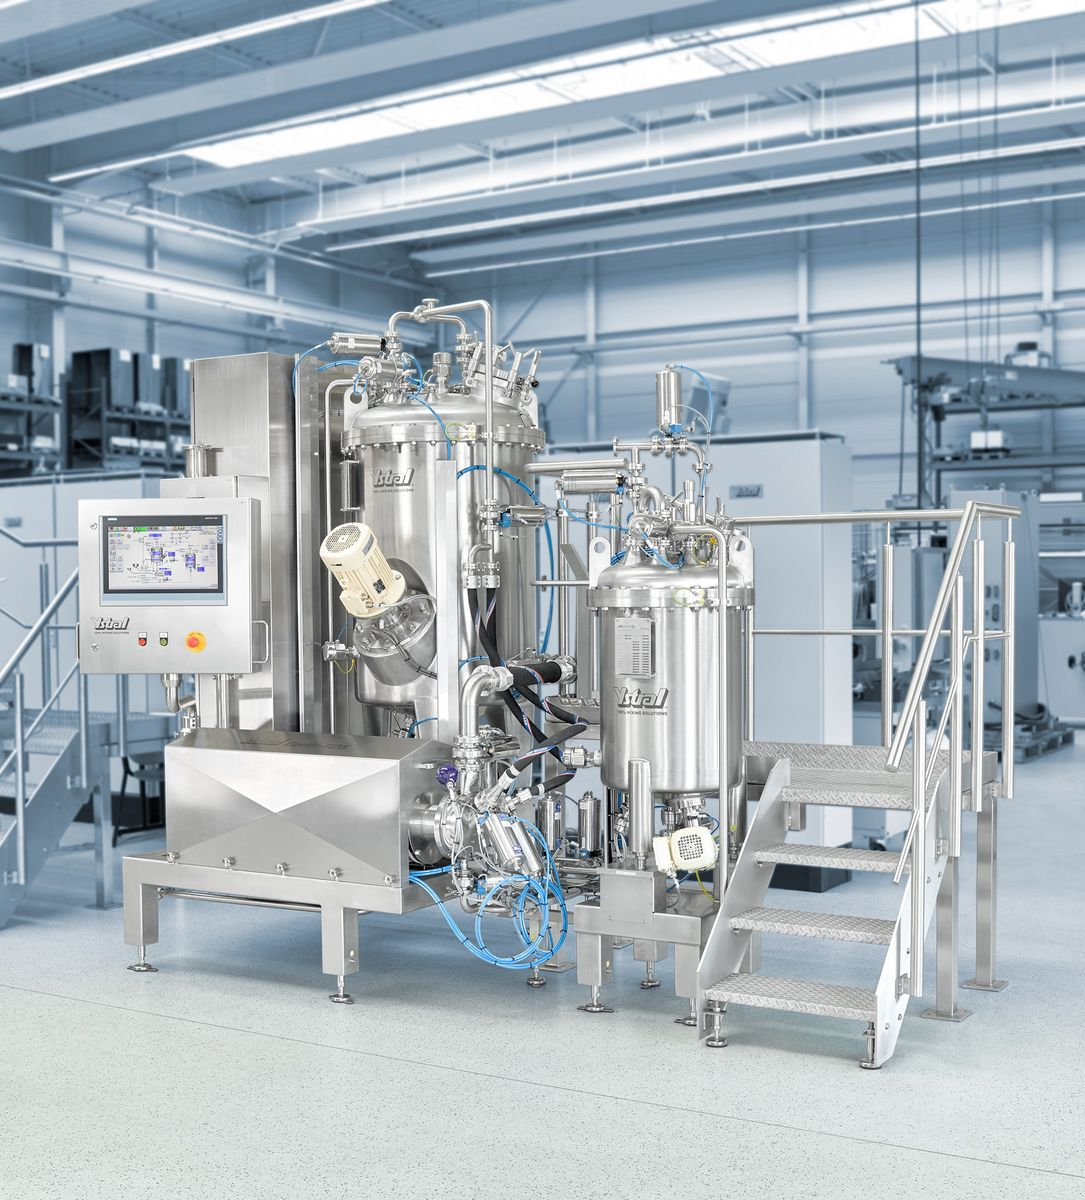 Process plant for tablet coating production